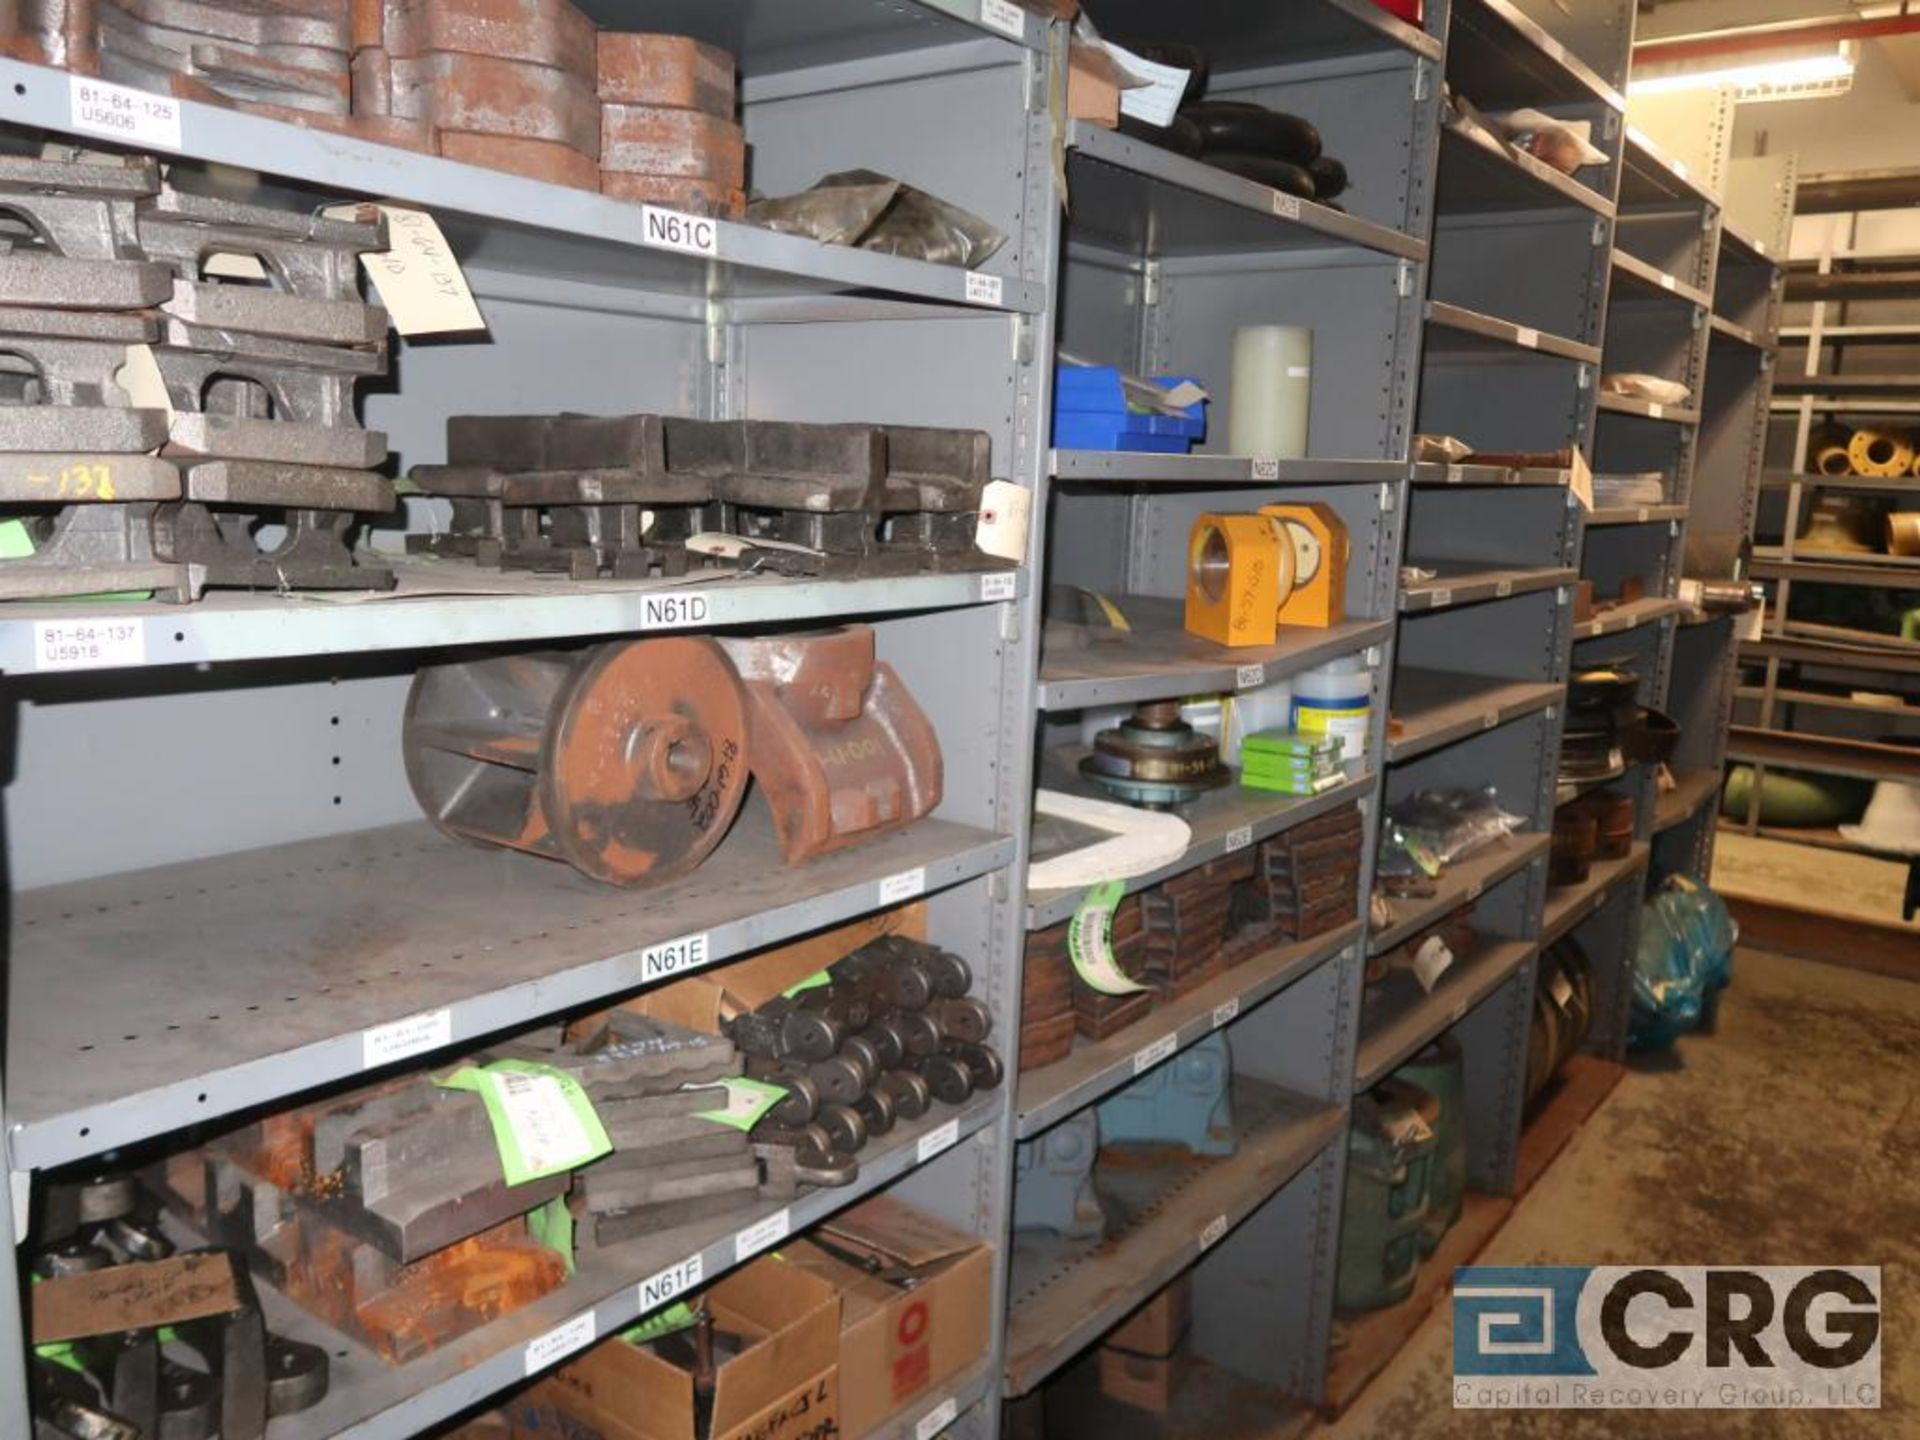 Lot of (35) sections with assorted parts including gaskets, fittings, shaft pins, gears, and - Image 14 of 17